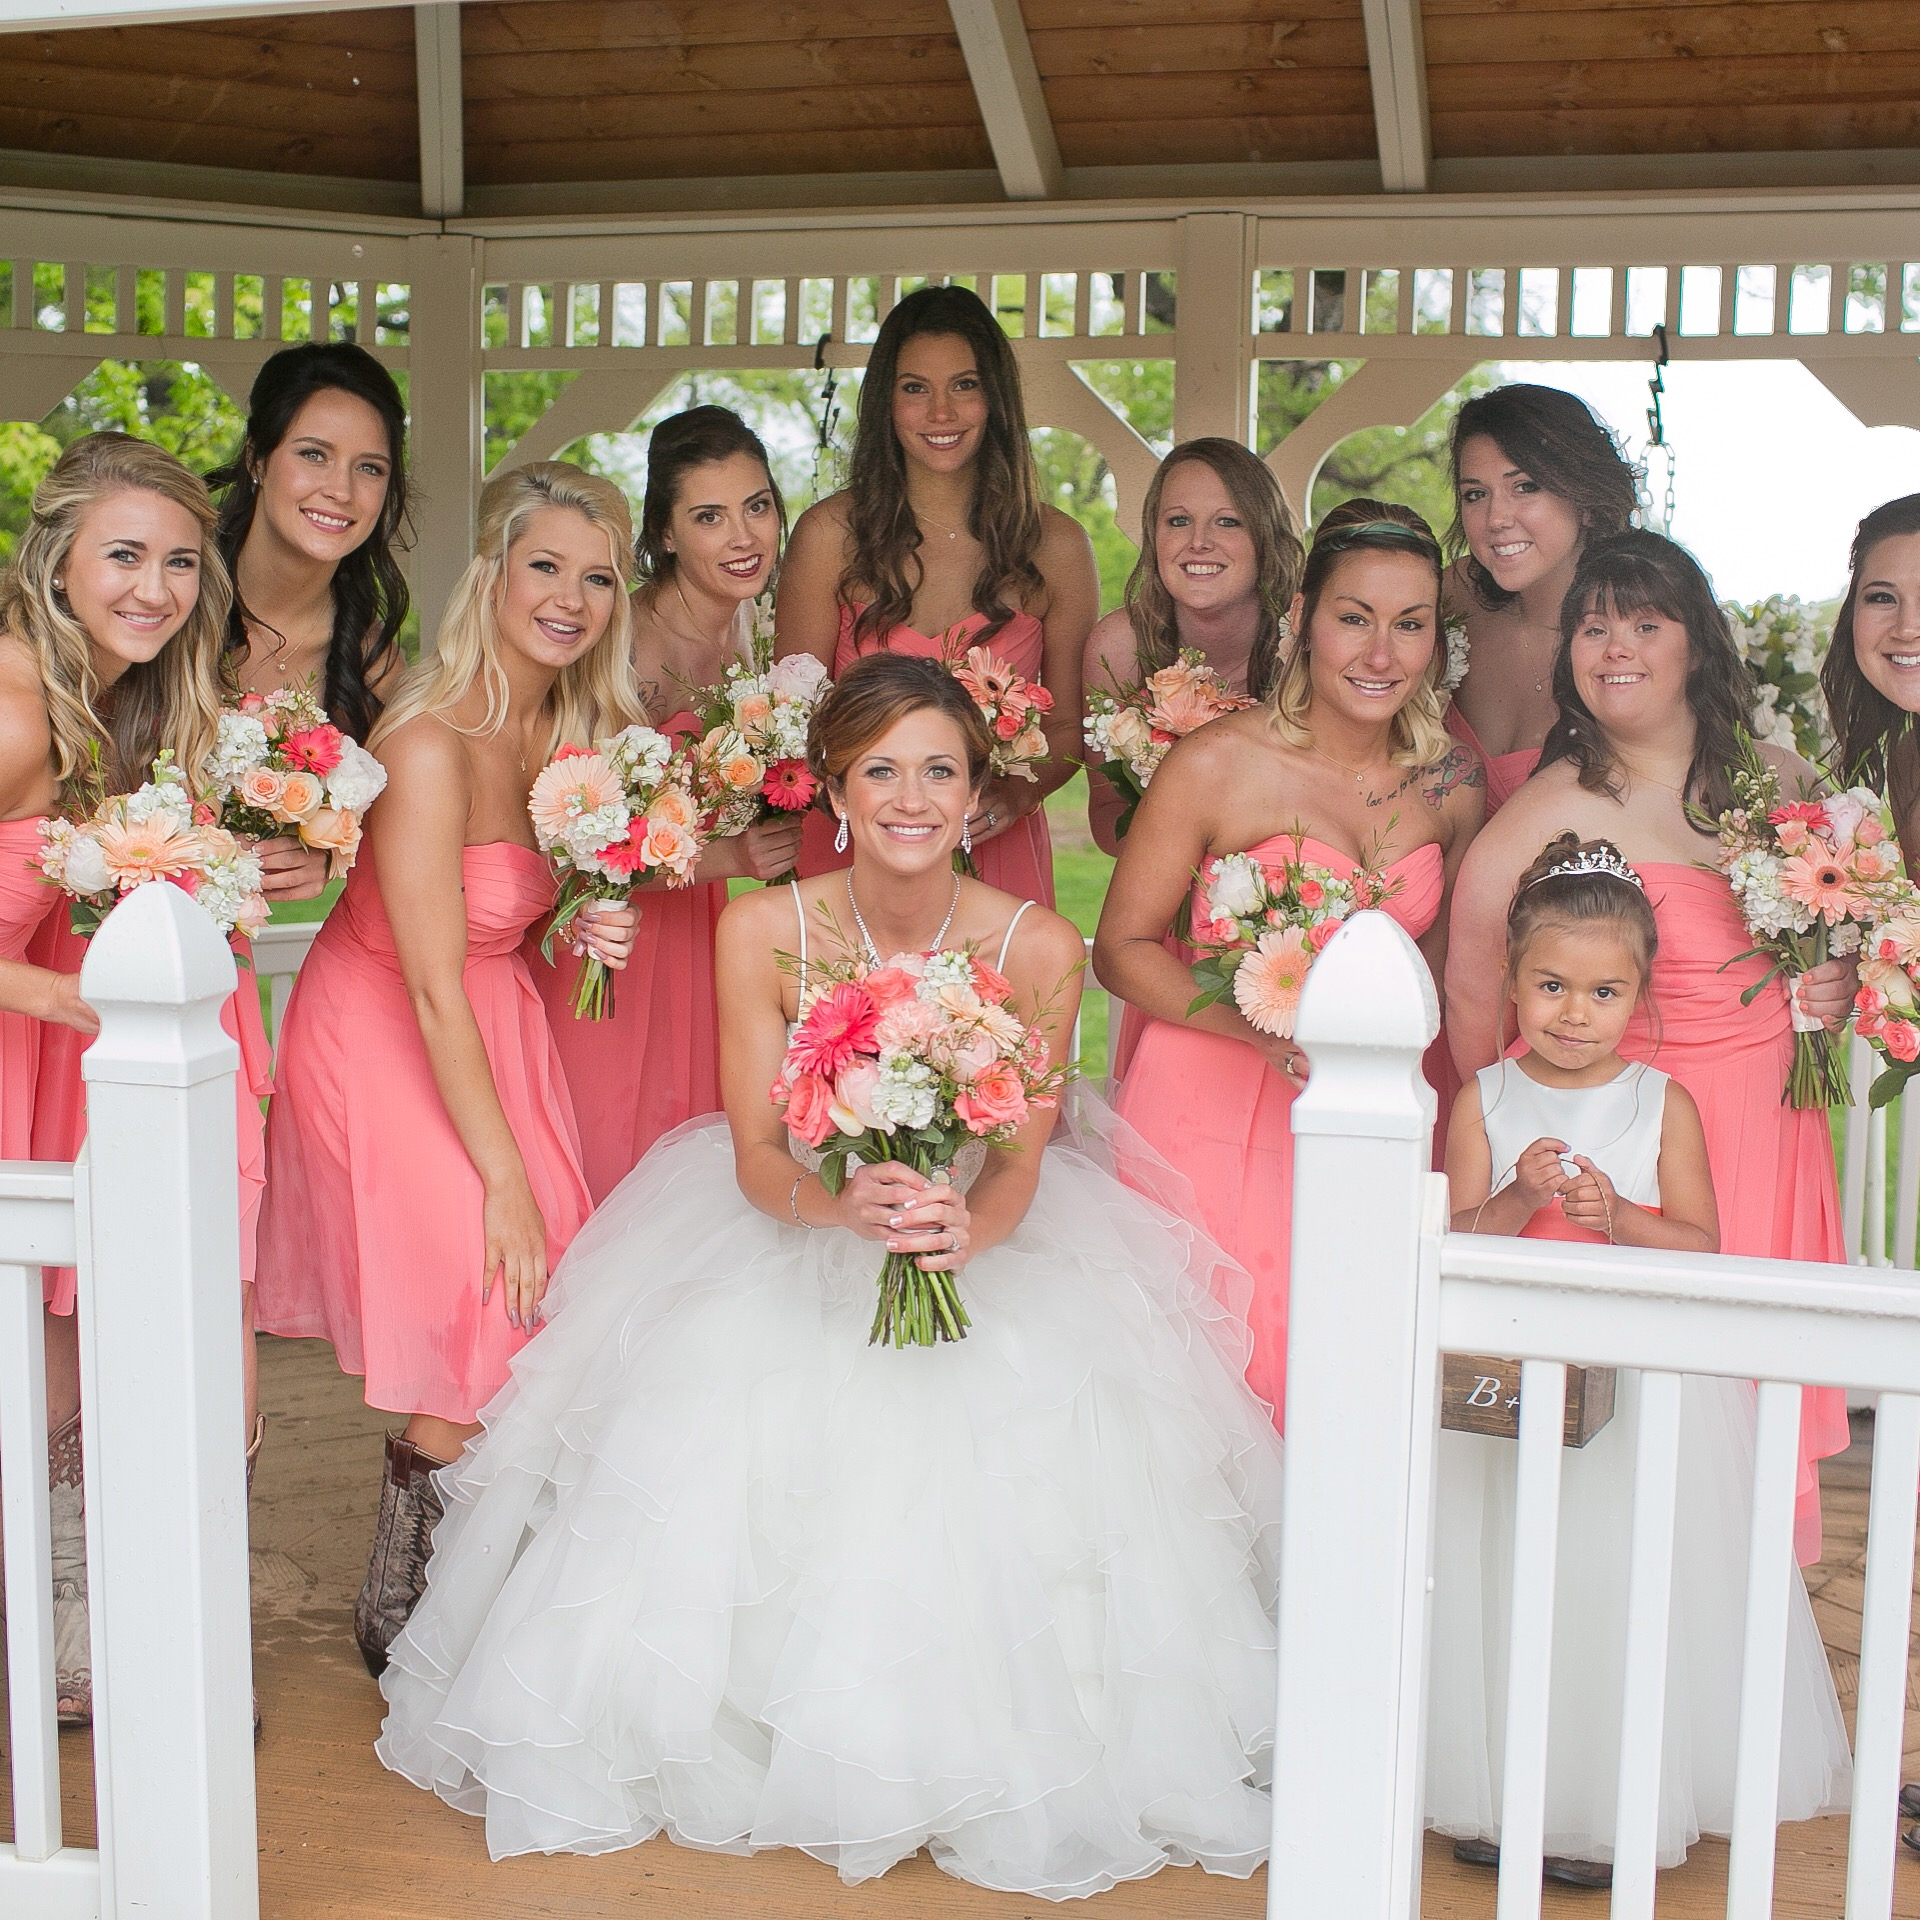 bride posing with bridesmaids in pink gowns